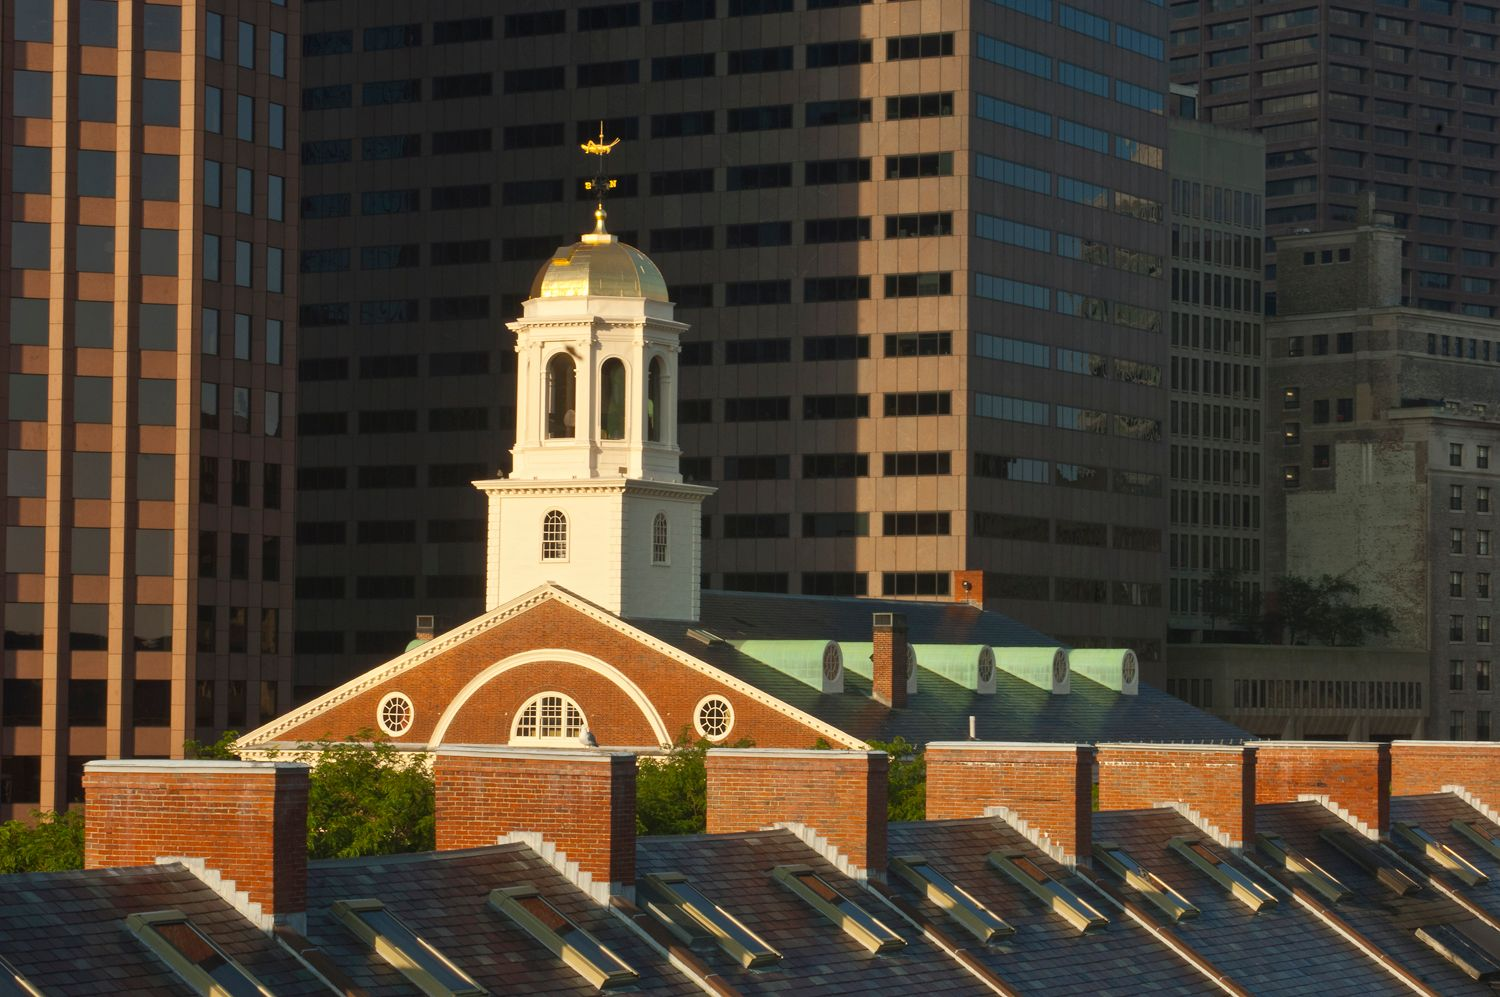 Faneuil Hall market and downtown Boston